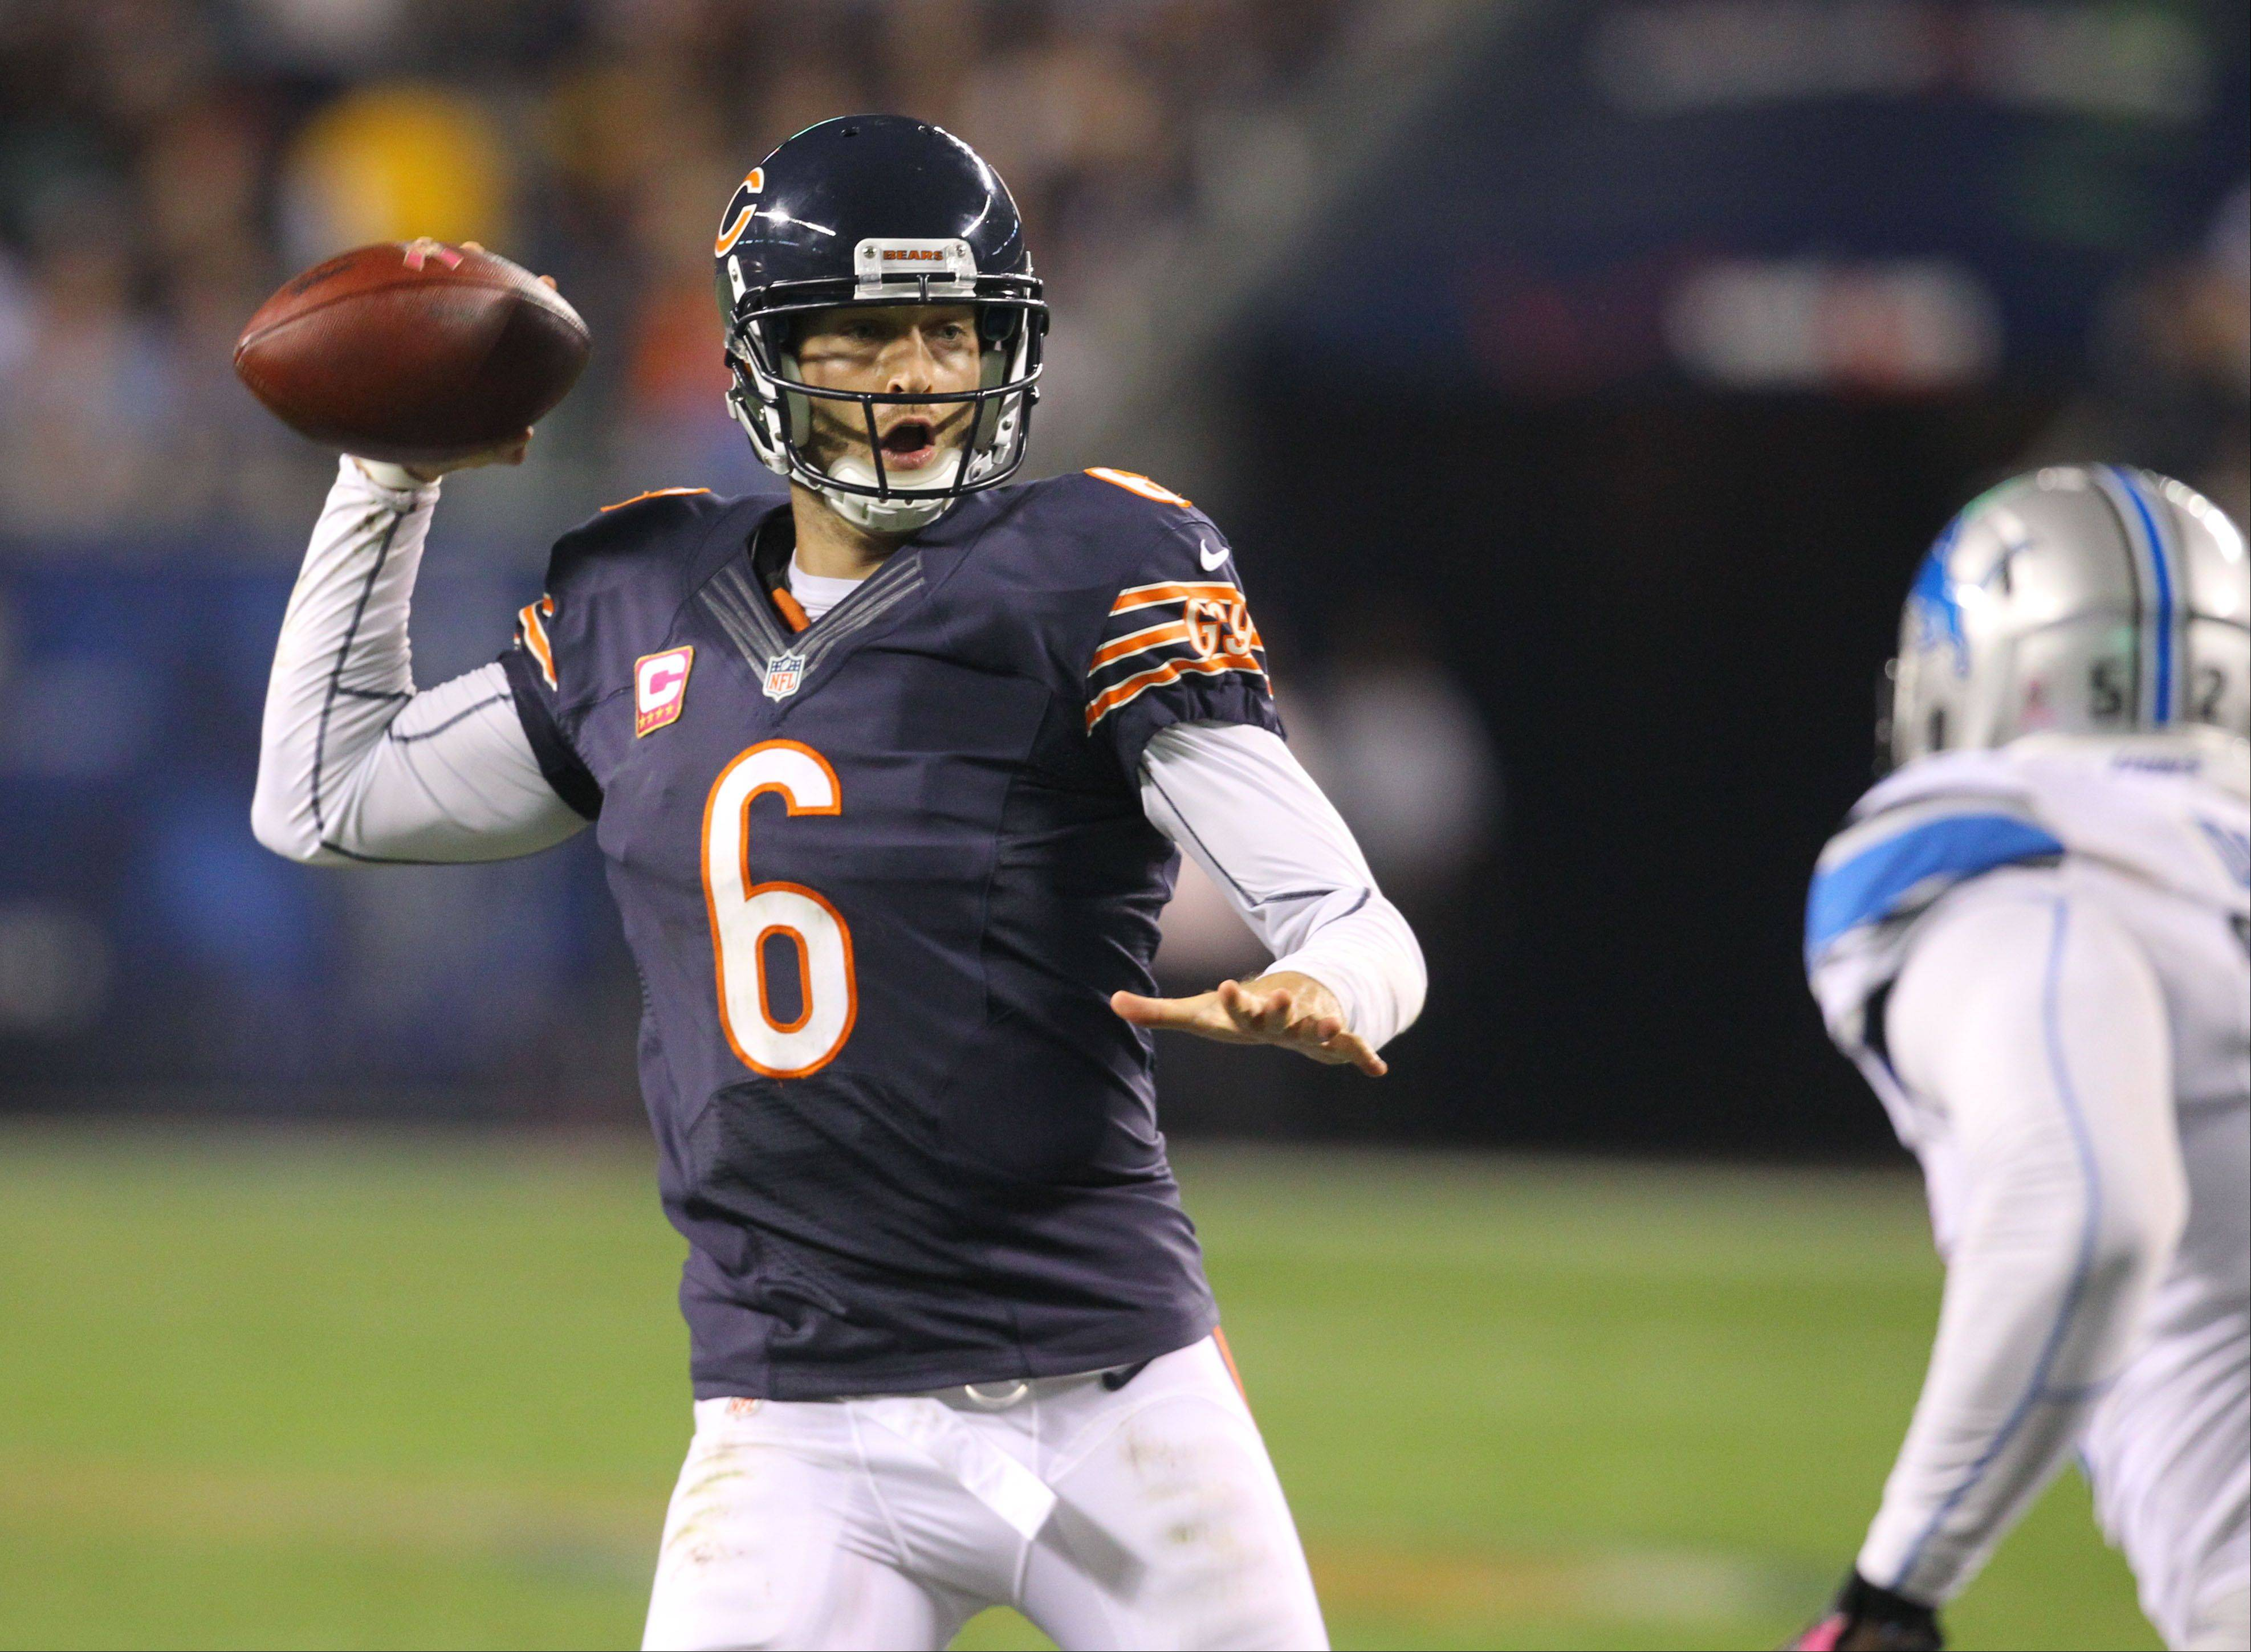 Chicago Bears quarterback Jay Cutler looks to throw.